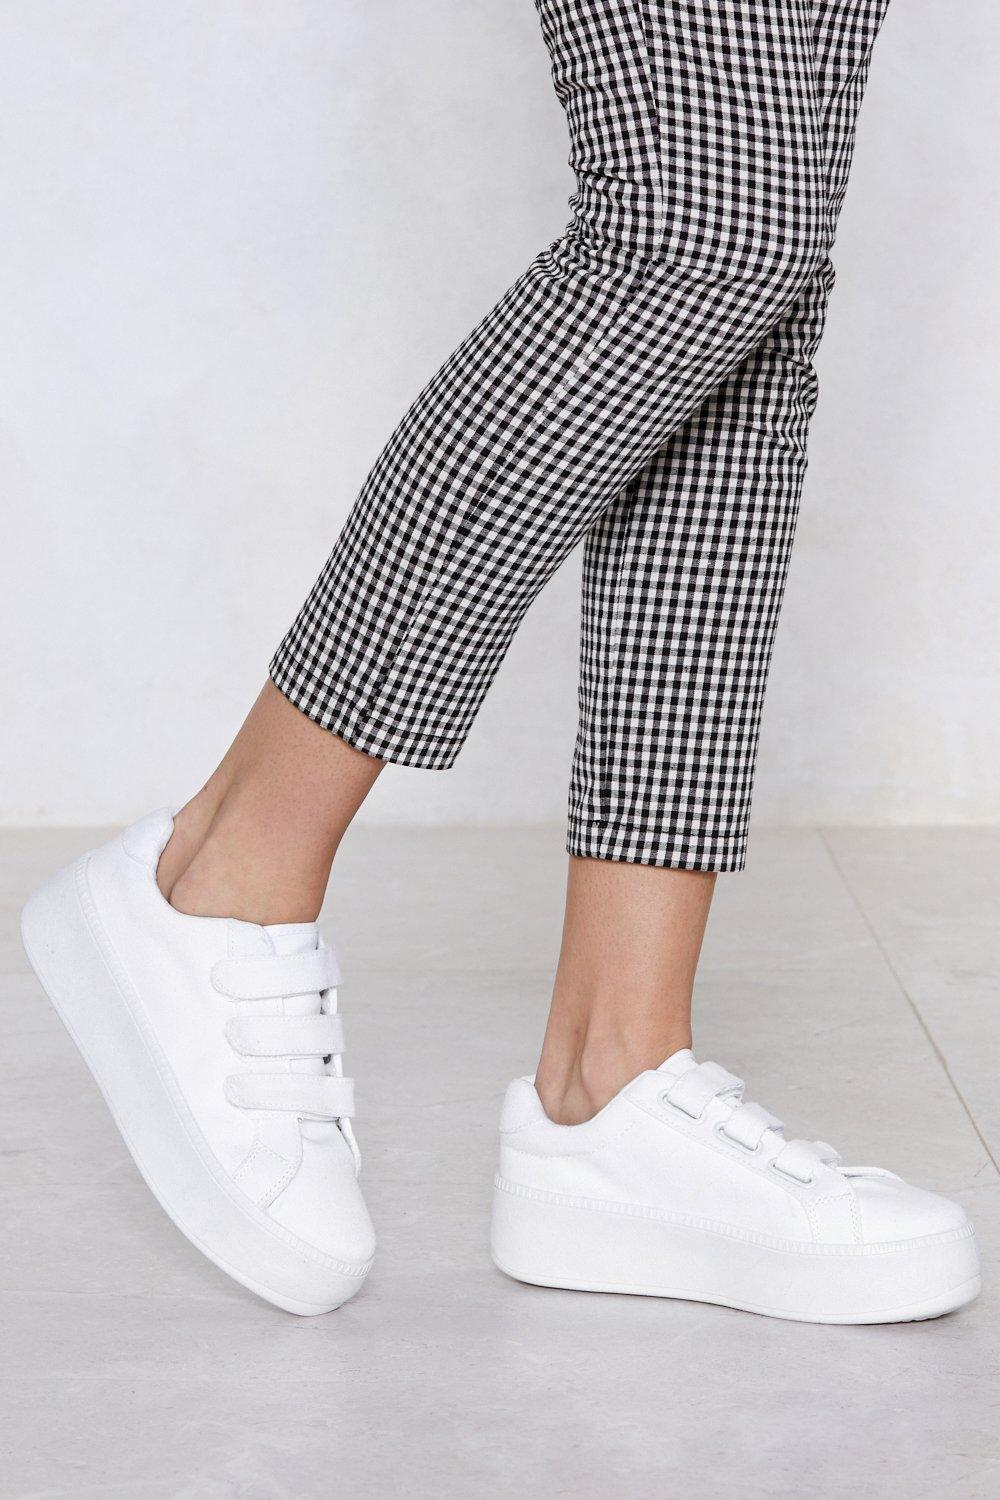 59360be54 You Raise Me Up Platform Sneaker | Shop Clothes at Nasty Gal!